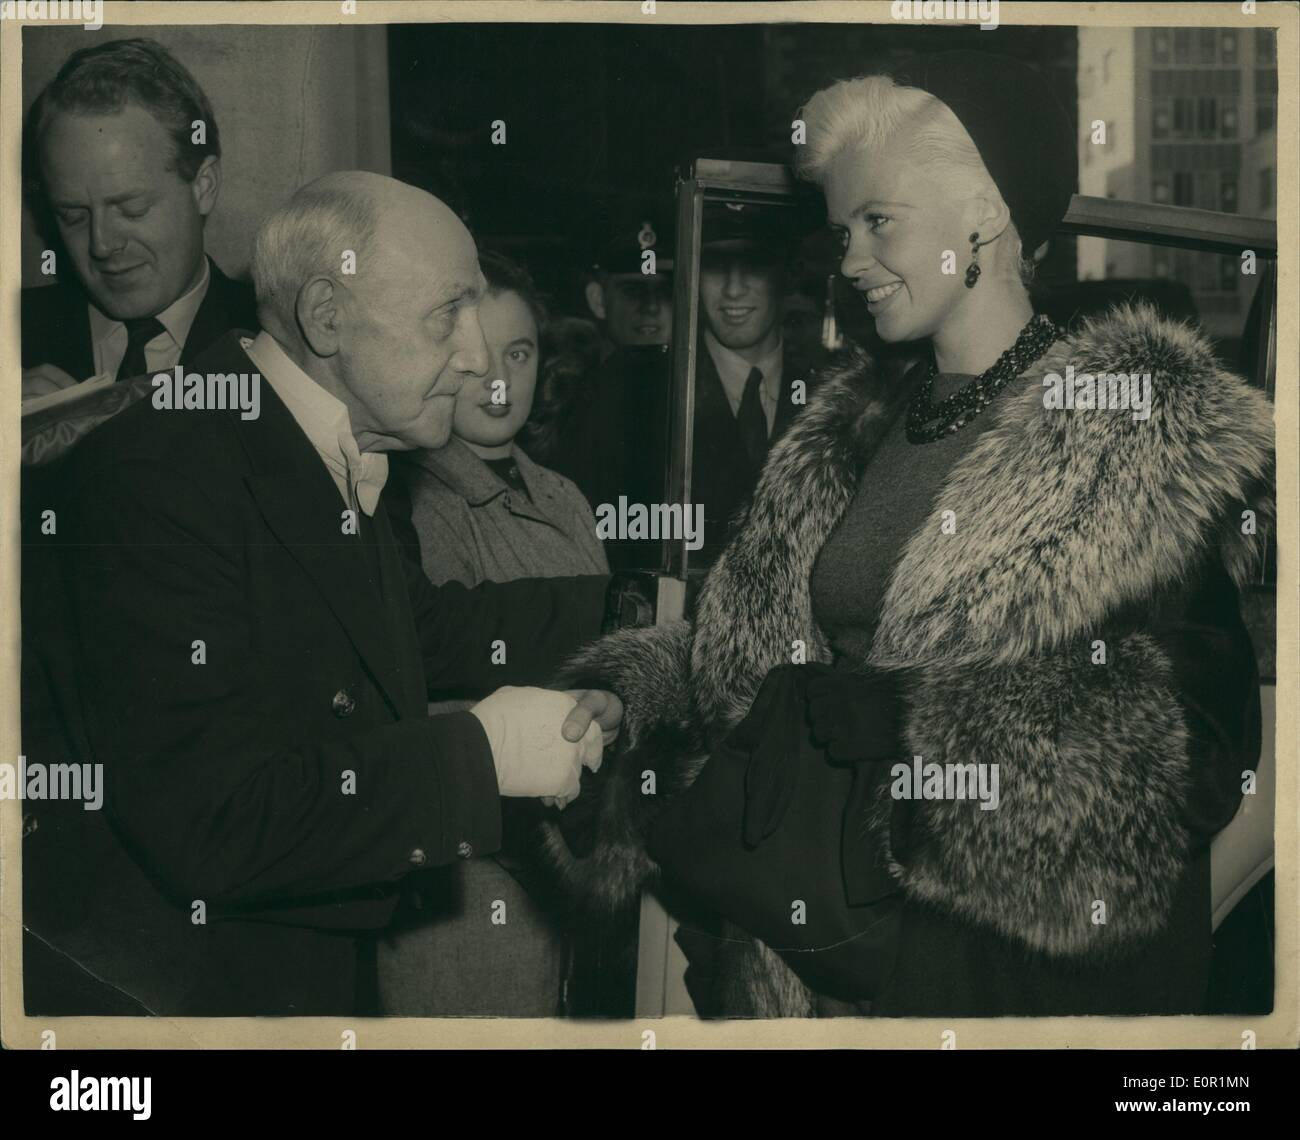 Jayne Mansfield House sep. 09, 1957 - jayne mansfield visits mansion house: photo shows